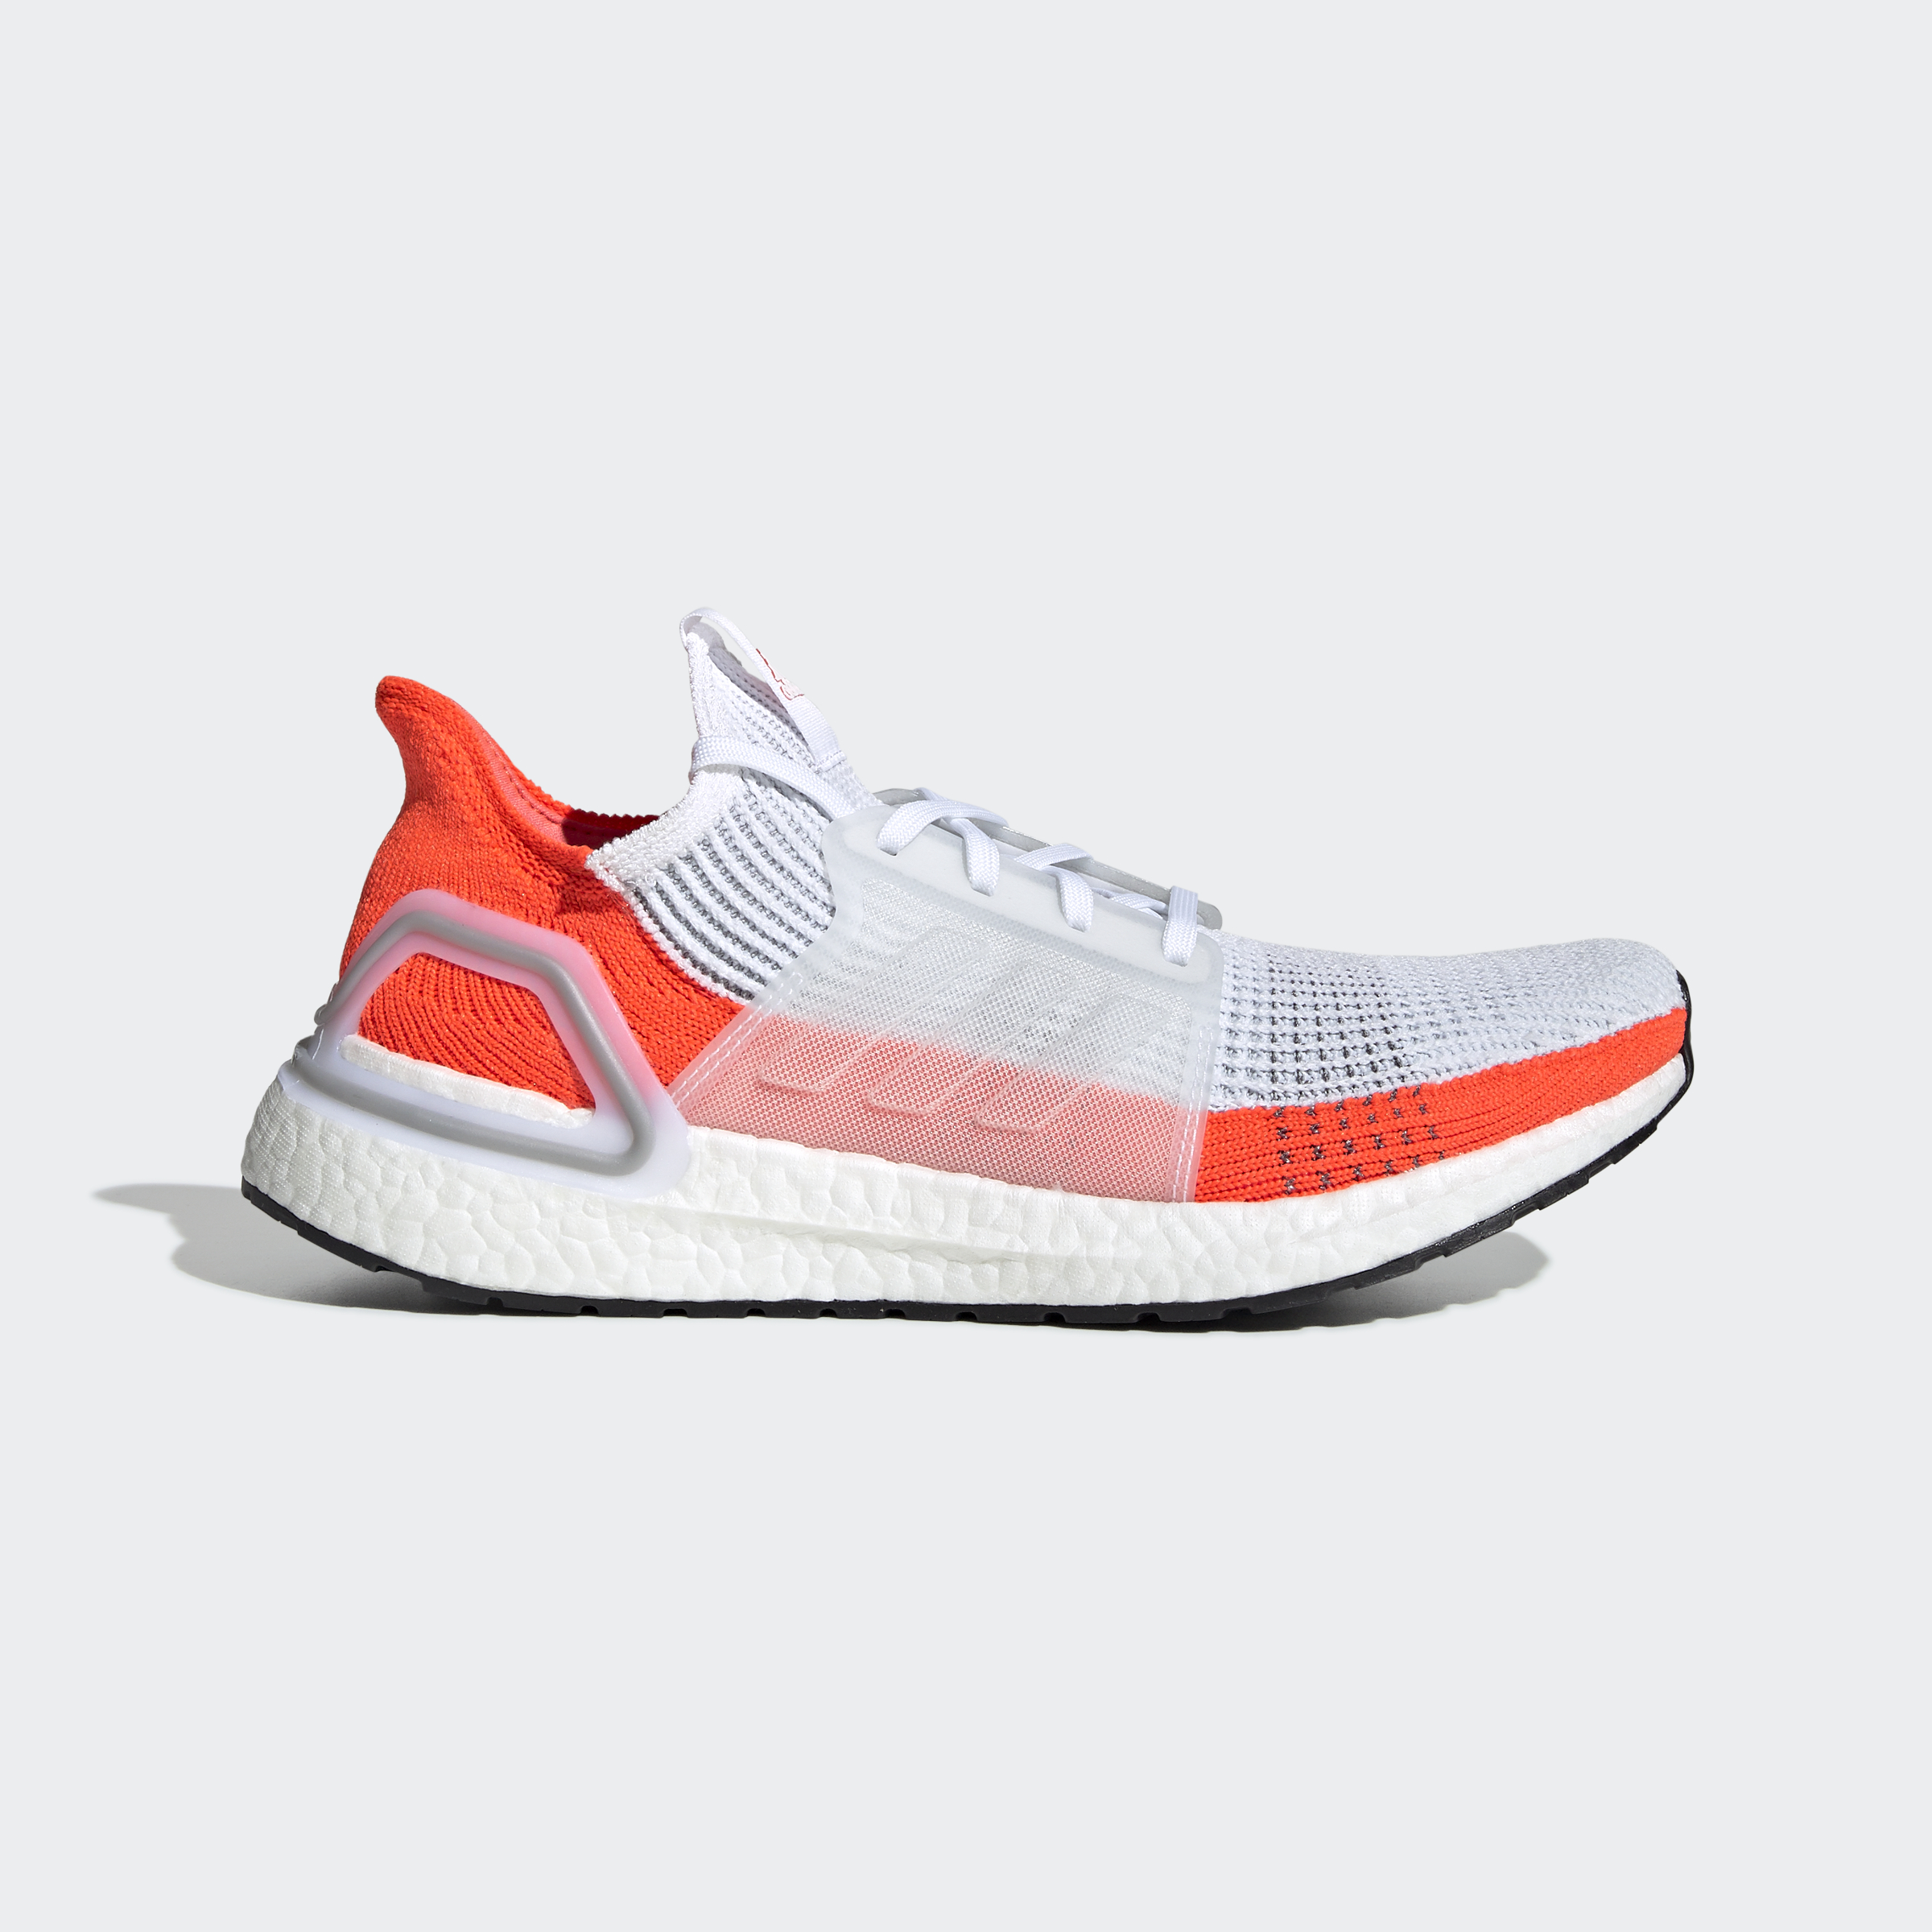 adidas-Ultraboost-19-Shoes-Athletic-amp-Sneakers thumbnail 26